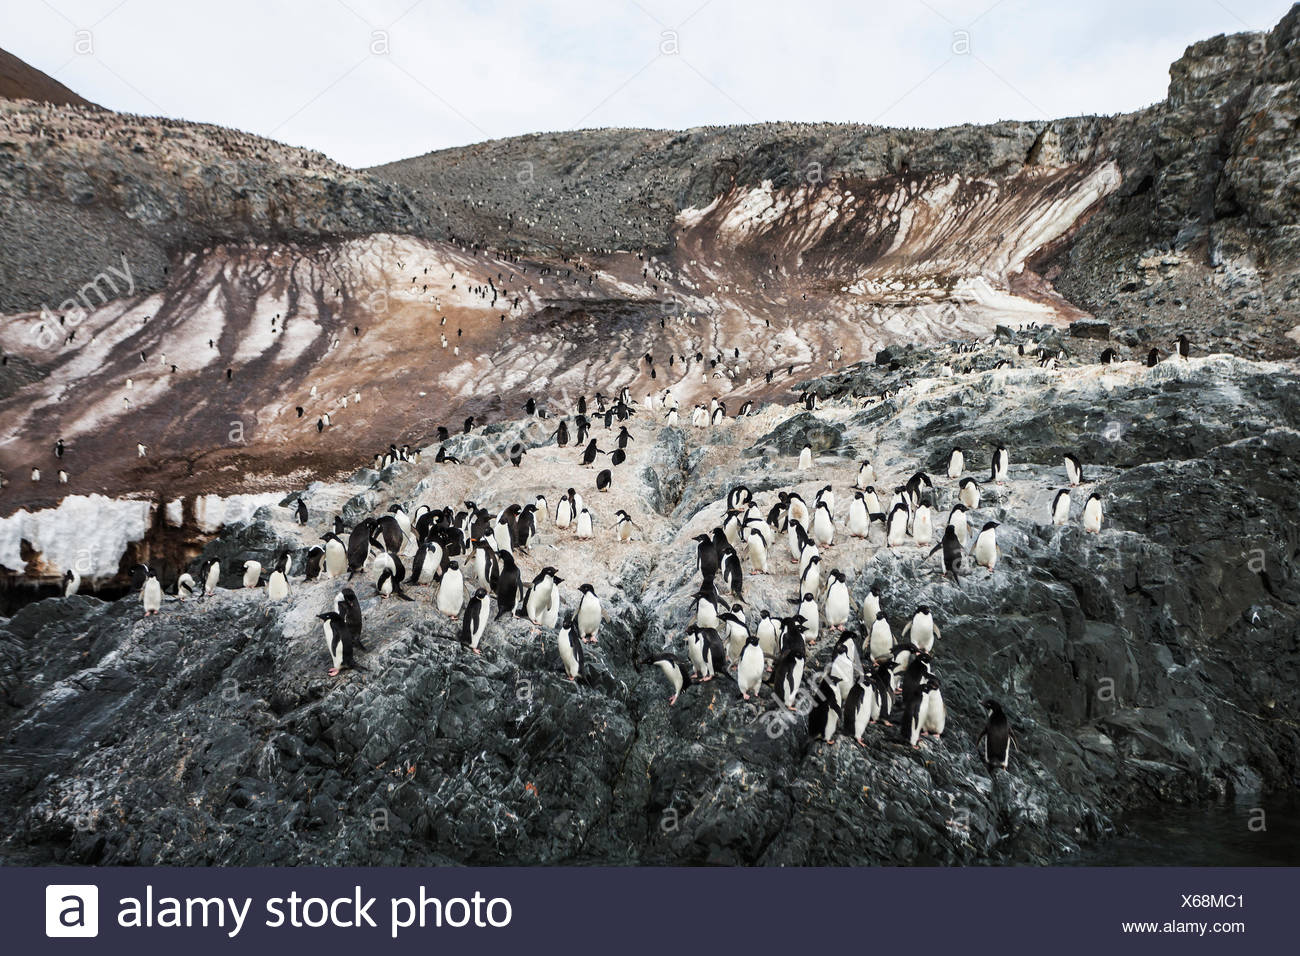 Melting snow runs down the Madder Cliffs on Joinville Island which play host to a large Adelie Penguin colony,  Joinville Island, Antarctic Peninsula - Stock Image